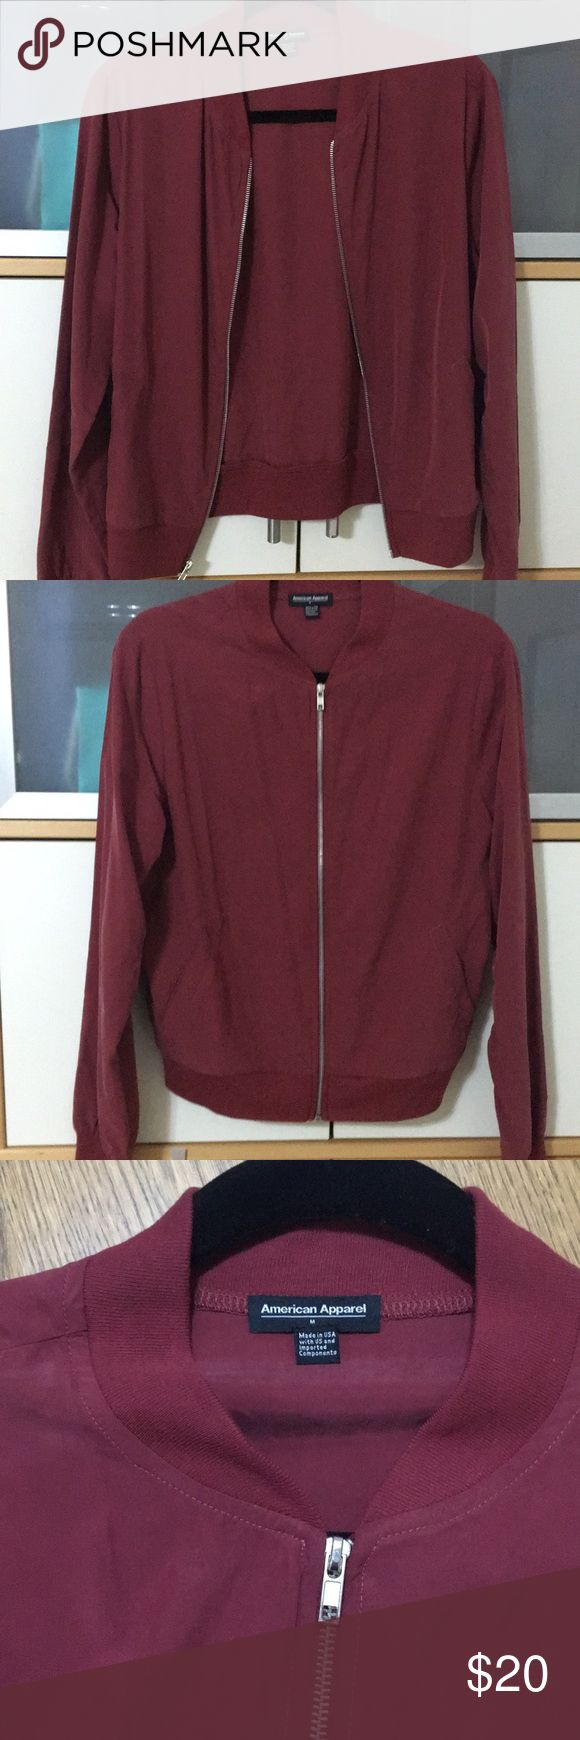 American Apparel Bomber This is a NEW American Apparel Bomber. It has a silver lined zipper with pockets. It is a size medium. It has never been worn. American Apparel Jackets & Coats